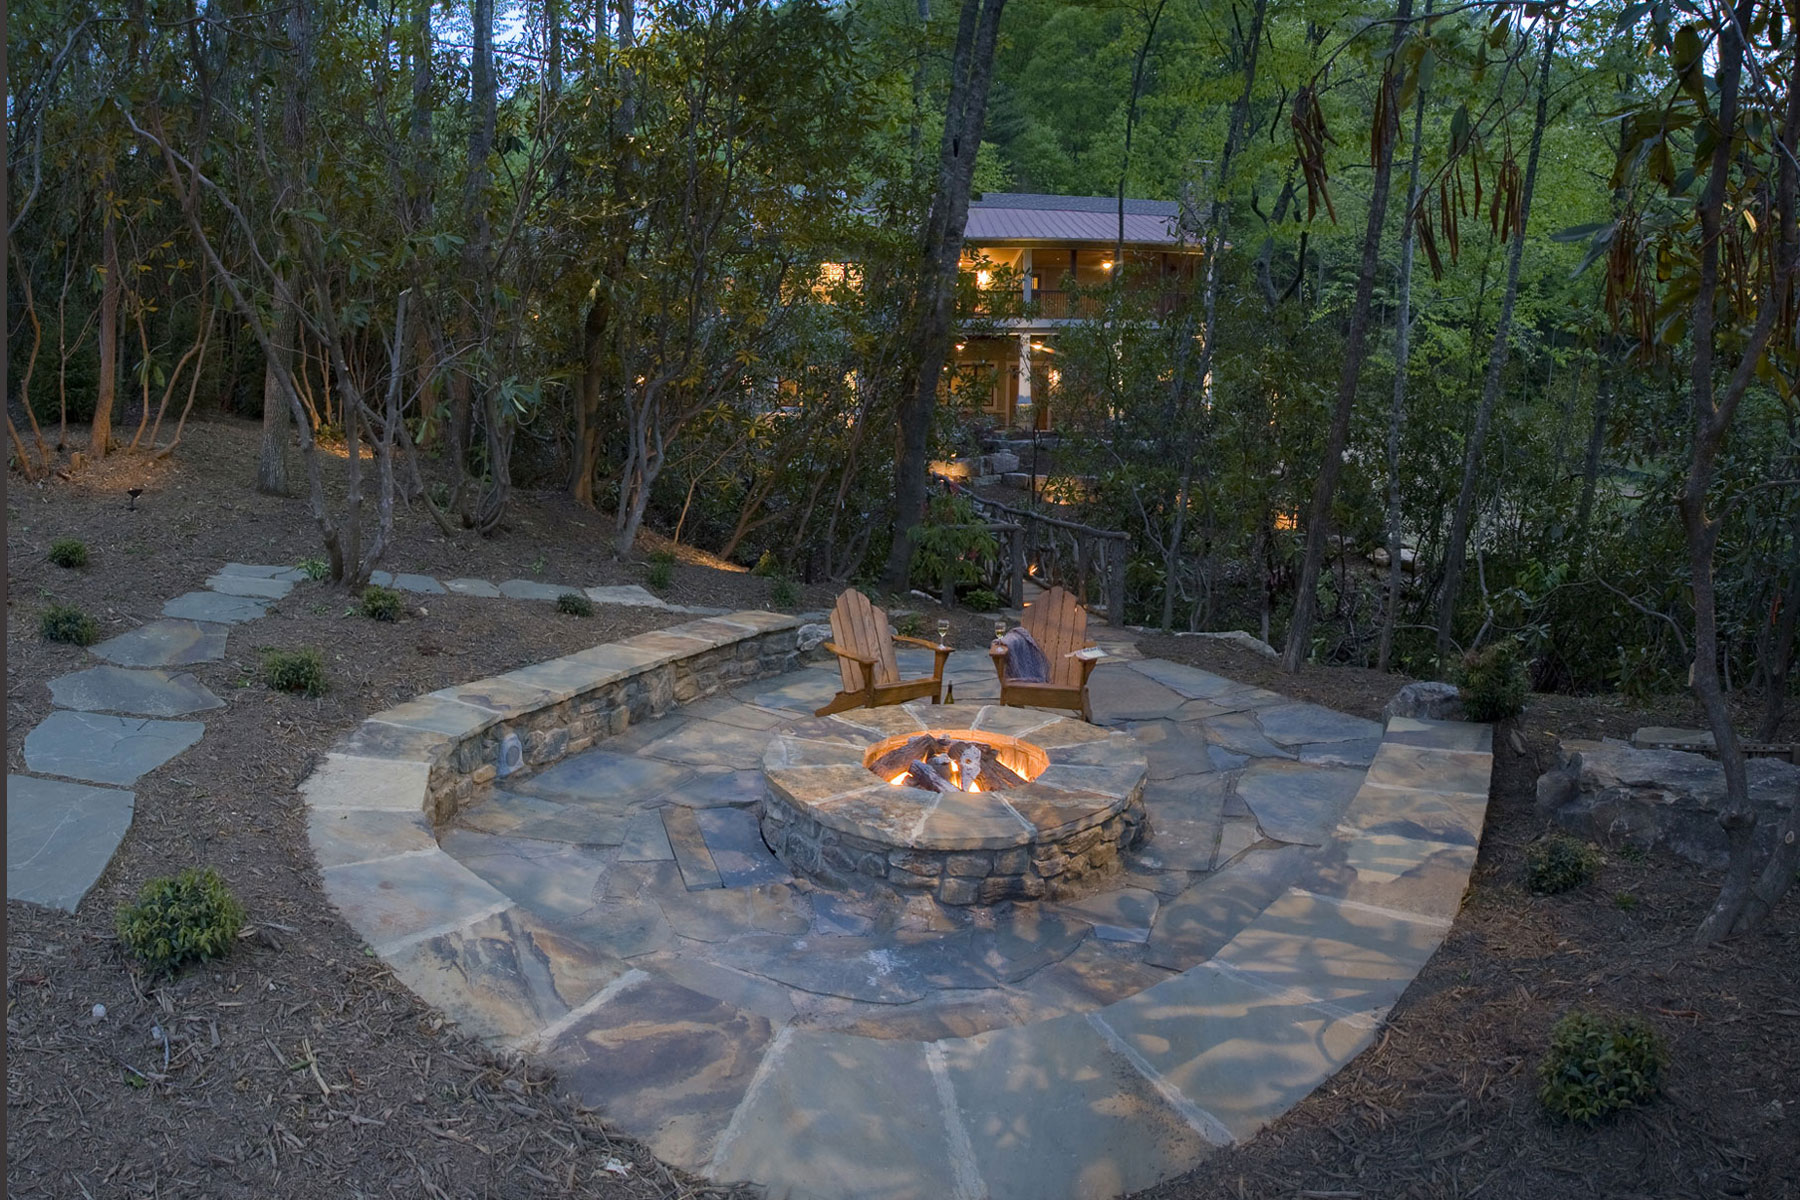 Backyard stone patio with firepit and raised wall for seating